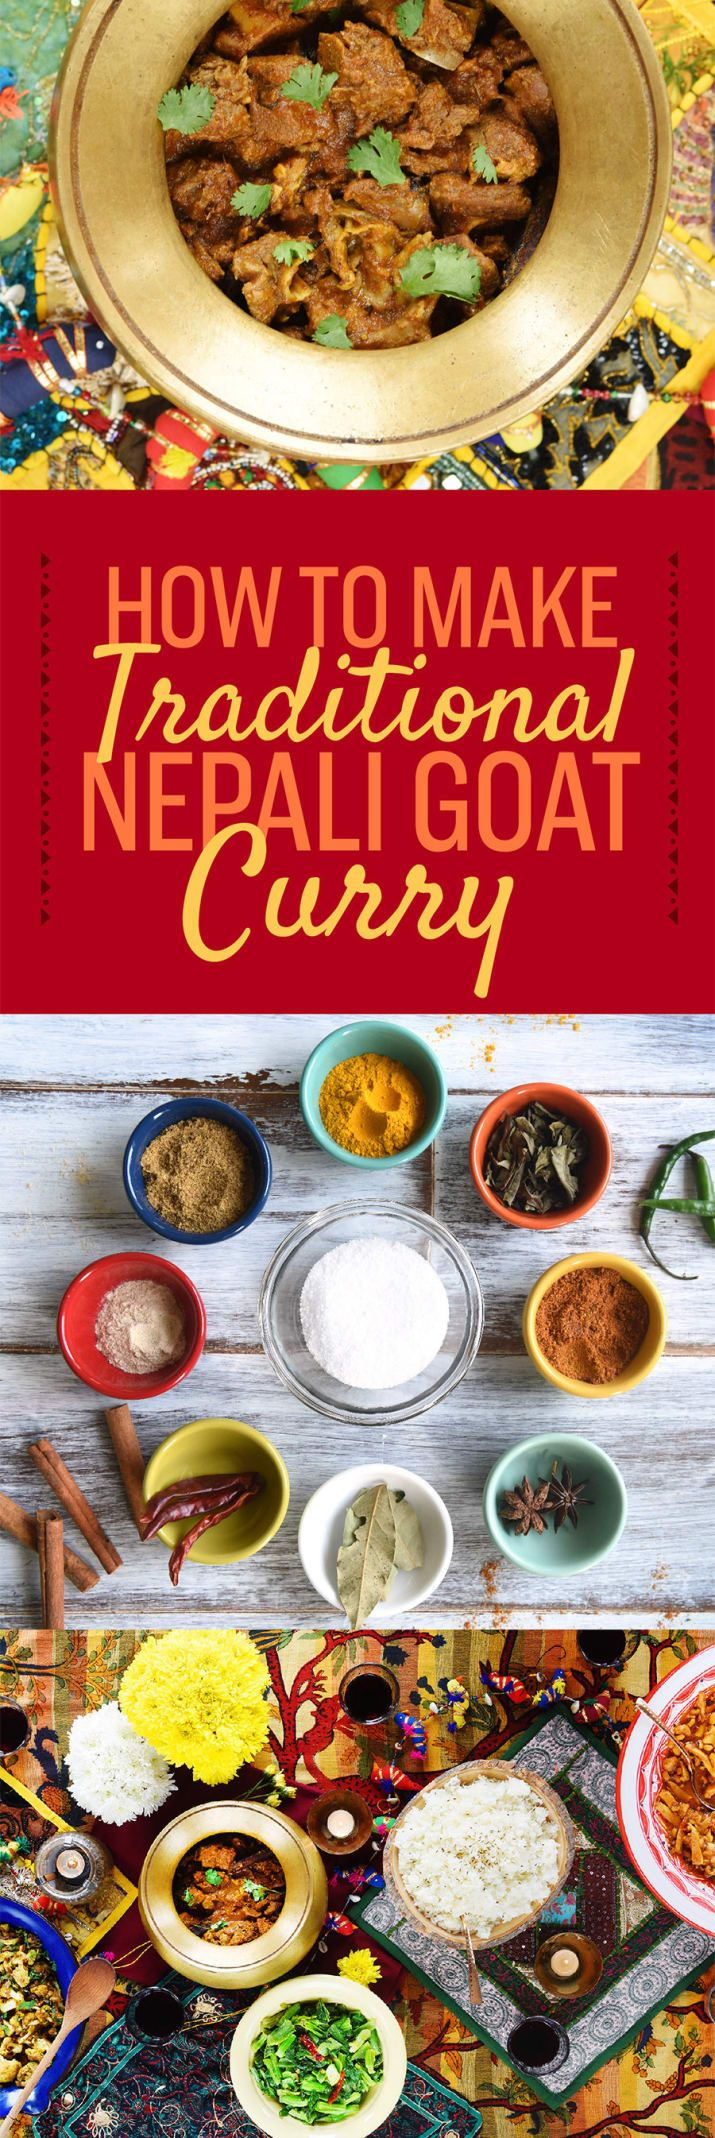 I am obsessed with goat curry. In Nepal, I would wait for my mother to serve it with a heap of rice almost every Saturday. When I would travel, nothing was more important than finding a lunch-stop serving goat curry with all-you-can-eat rice and ghee. During festivals, I would refuse to touch vegetables because, well, who wants to eat vegetables when your father has cooked a whole goat?But when I came to America for college, if I wanted Nepali food I had to cook it myself. In this essay, I…